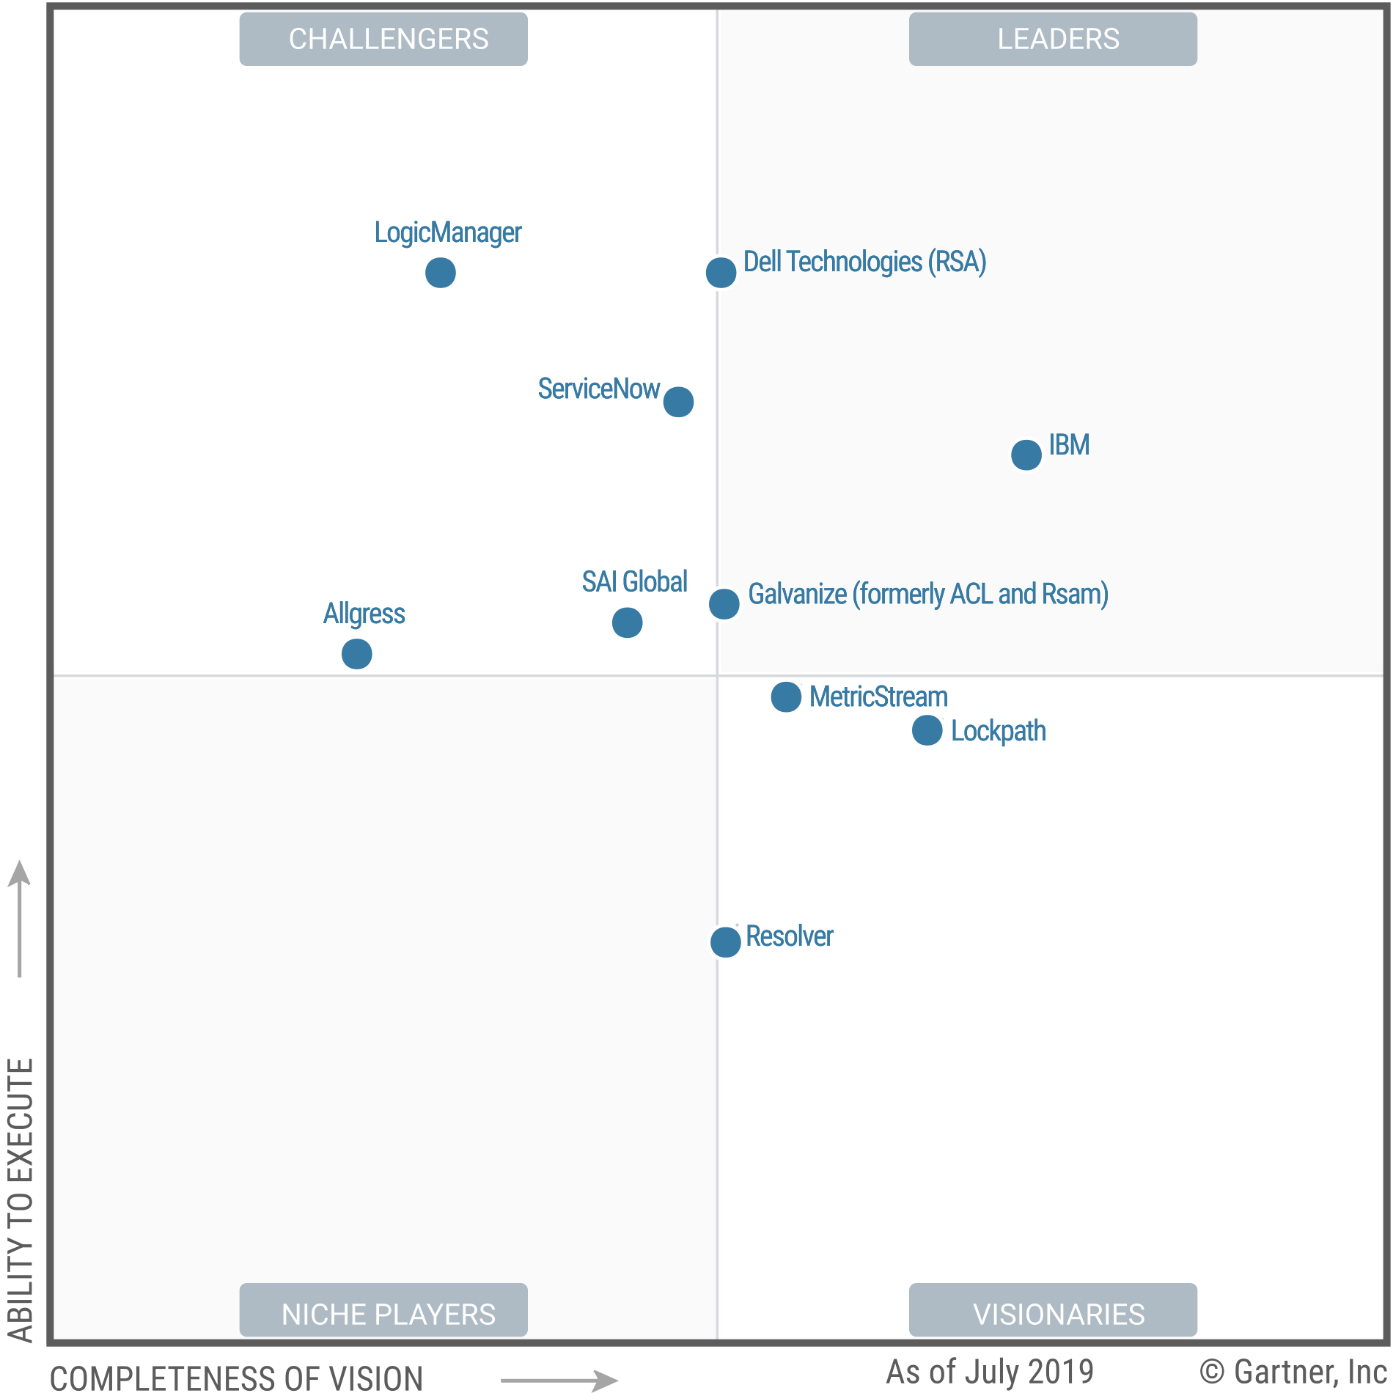 Magic Quadrant for IT Risk Management 2019 (G00383242)